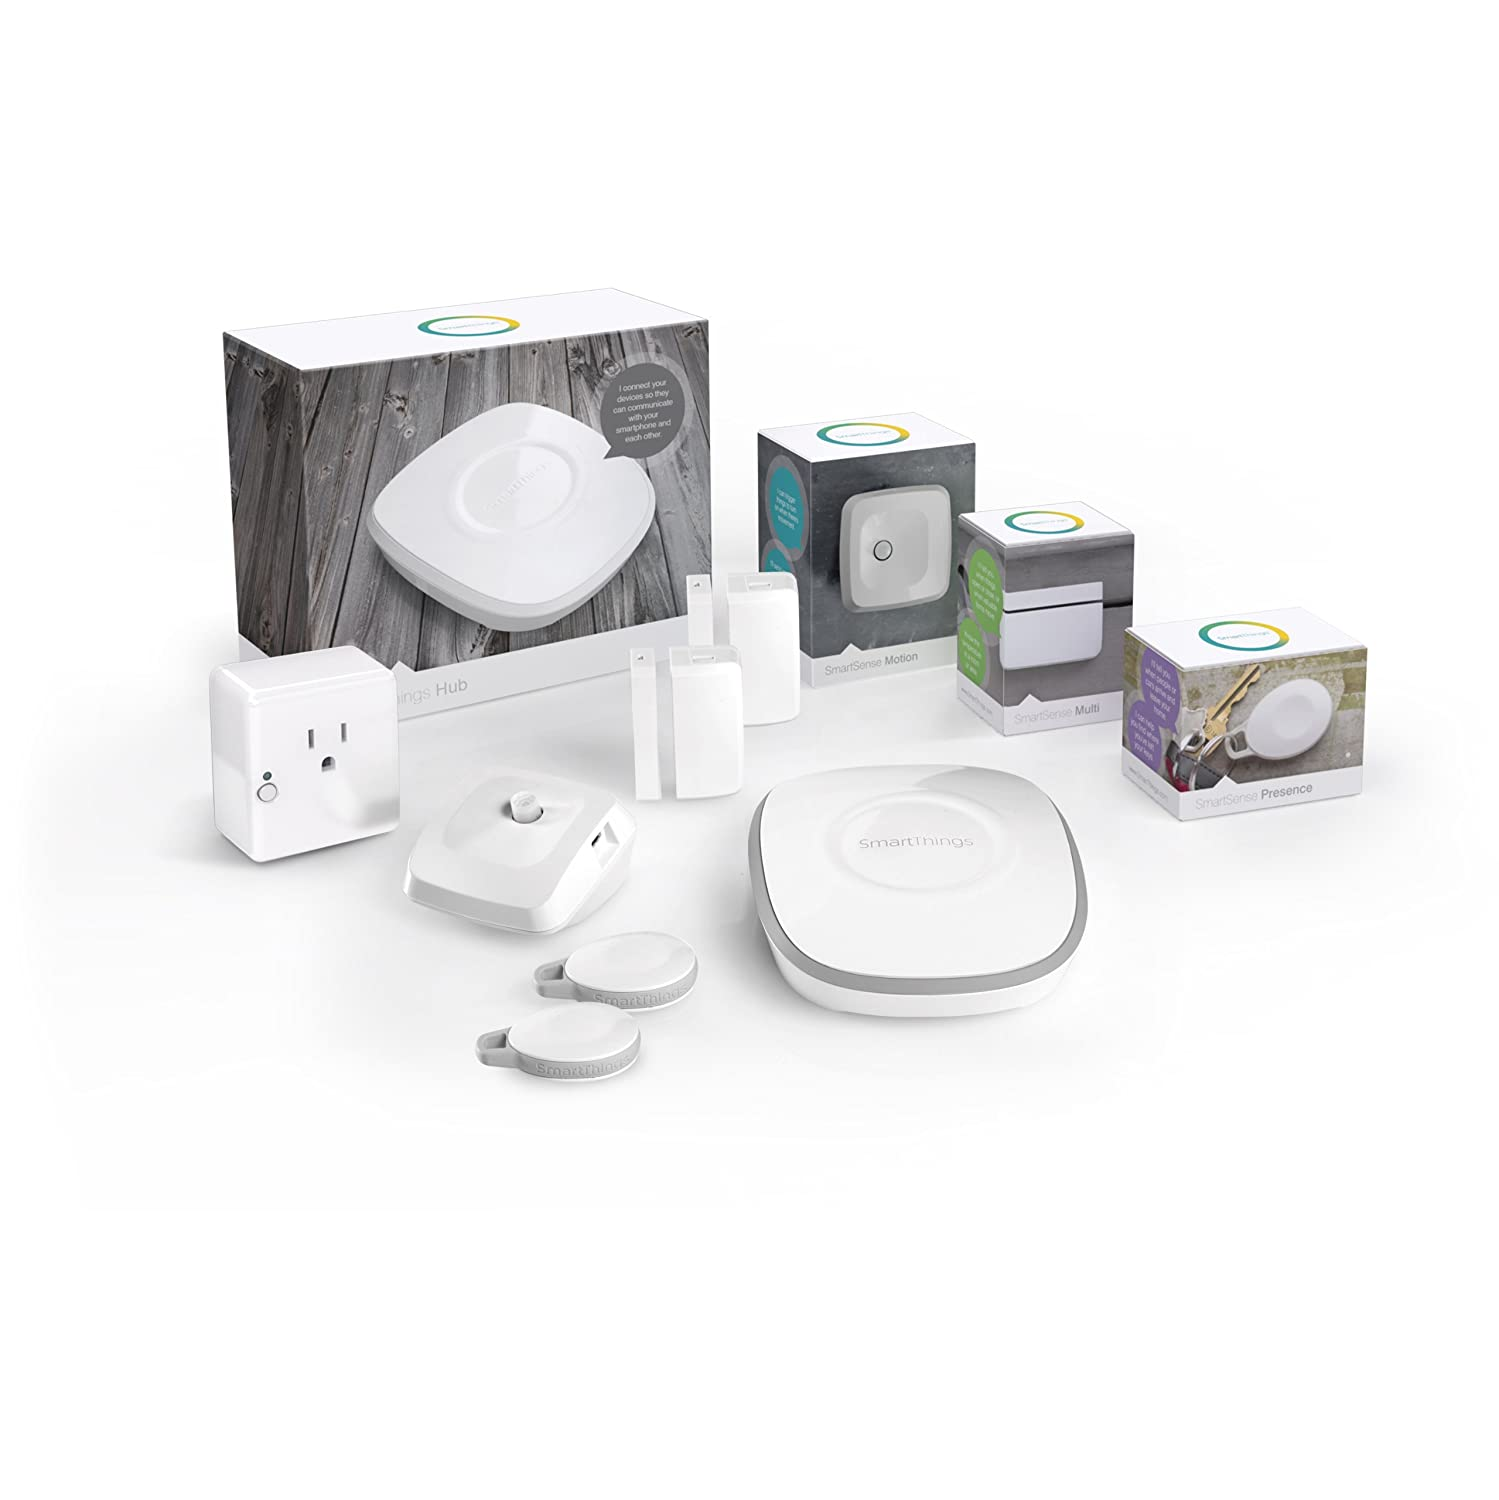 iris zwave ge 45637 wireless lighting wt00z how to choose home automation system findhowcom